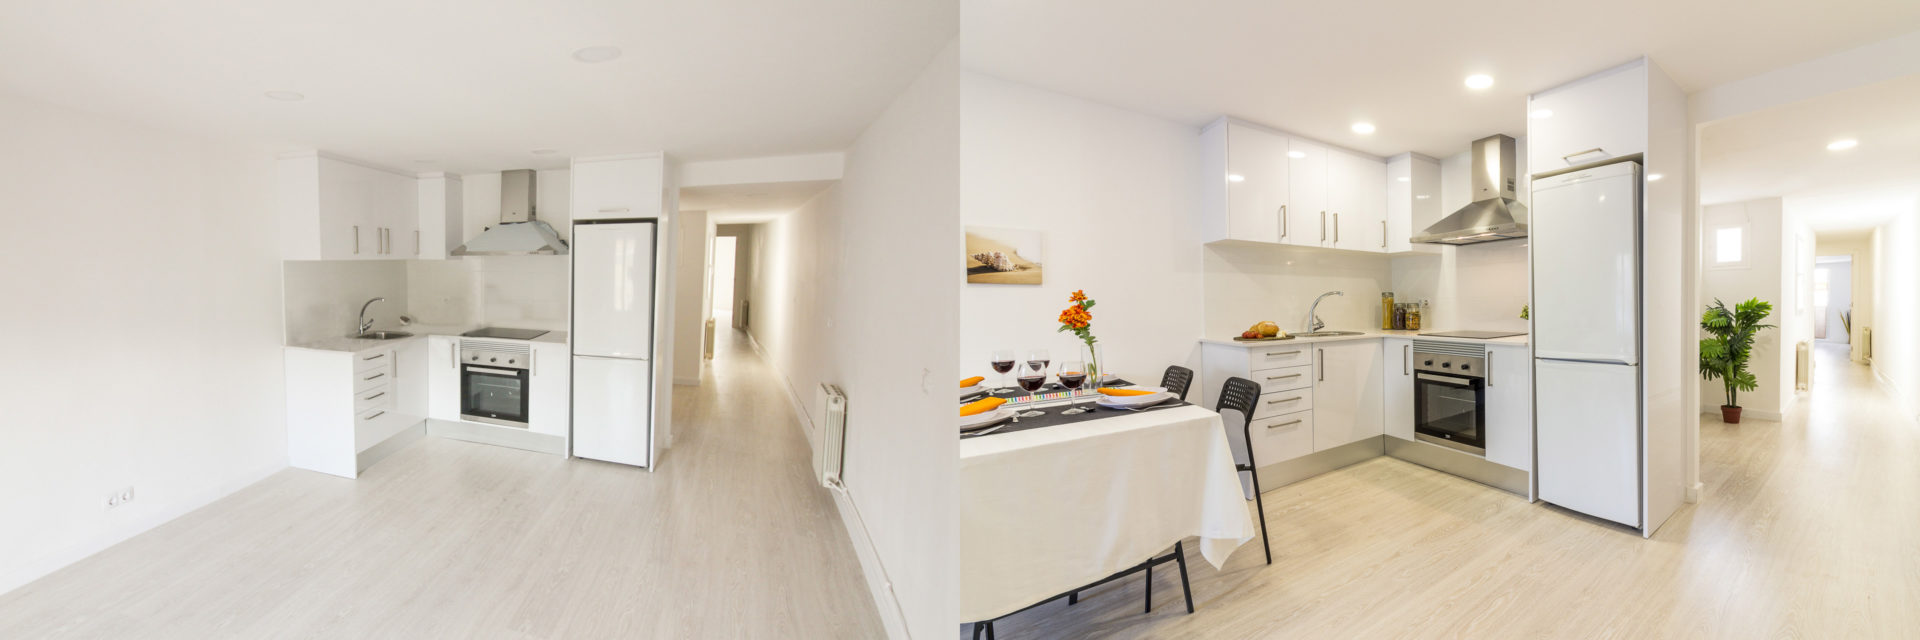 home staging raval comedor foto antes despues